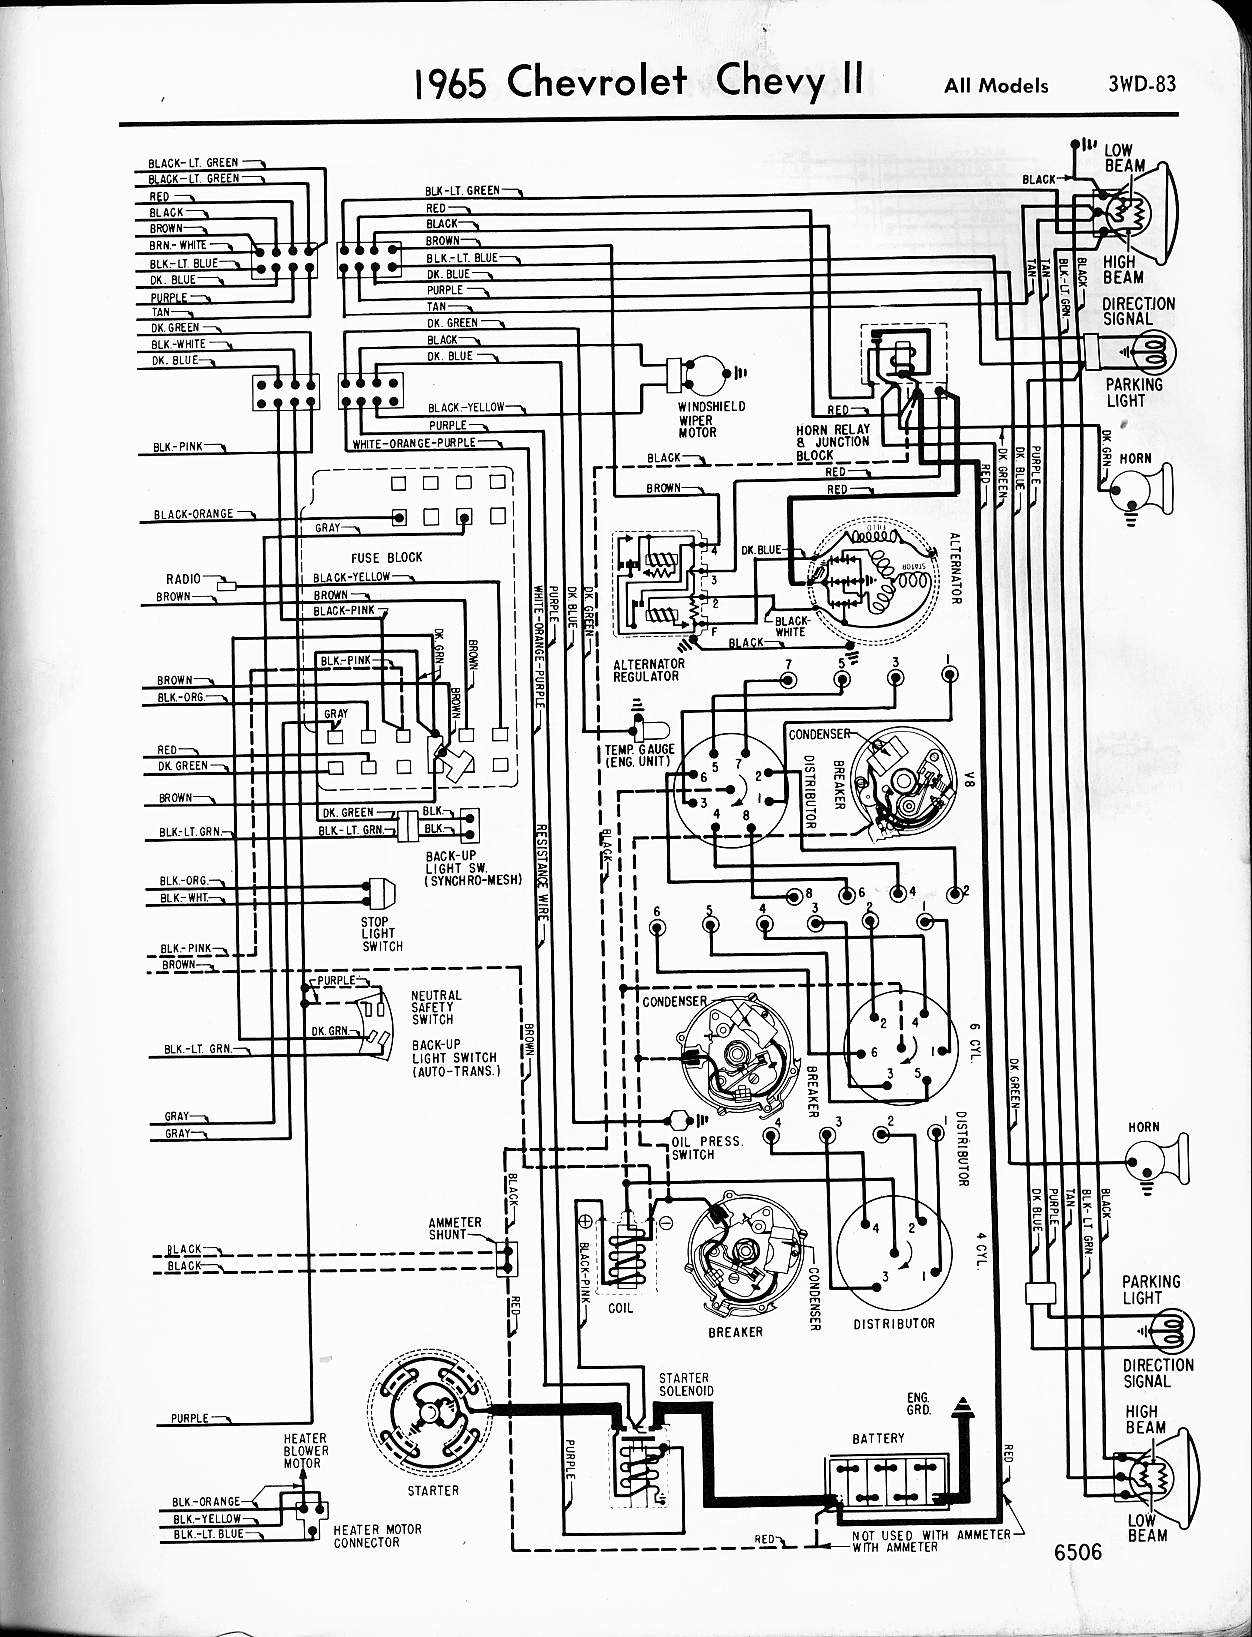 MWireChev65_3WD 083 1965 c10 wiring diagram 66 chevy c10 alternator wiring diagram 1955 Chevy Headlight Wiring Diagram at reclaimingppi.co